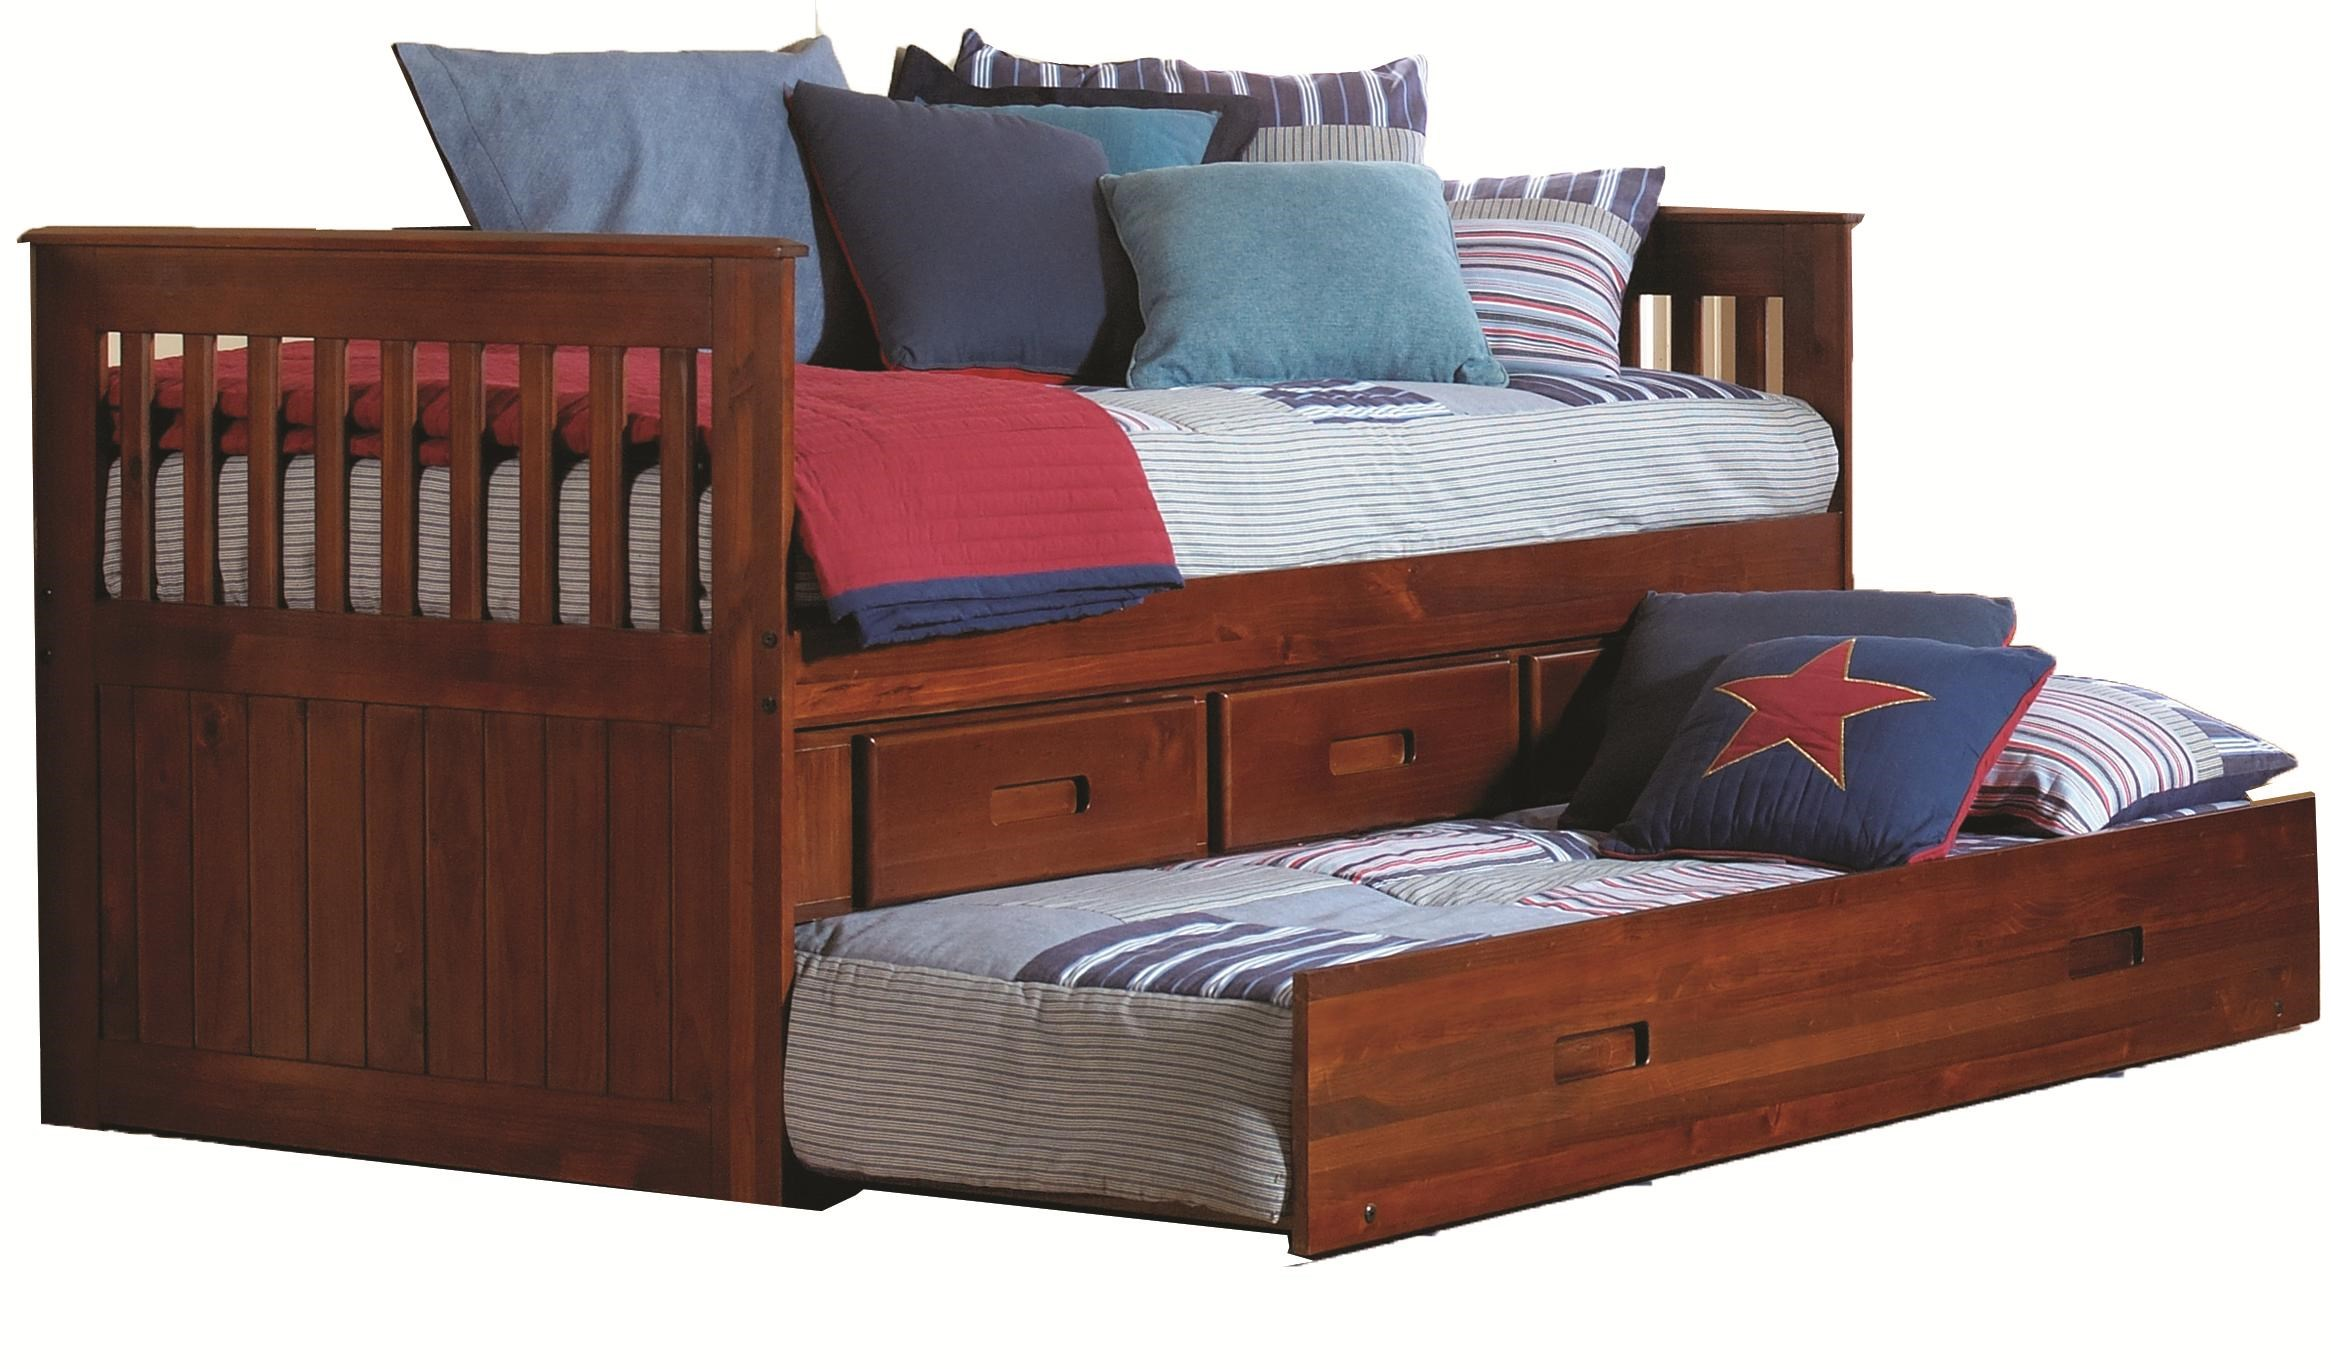 Merlot Twin Captain s Bed Walker s Furniture Daybeds